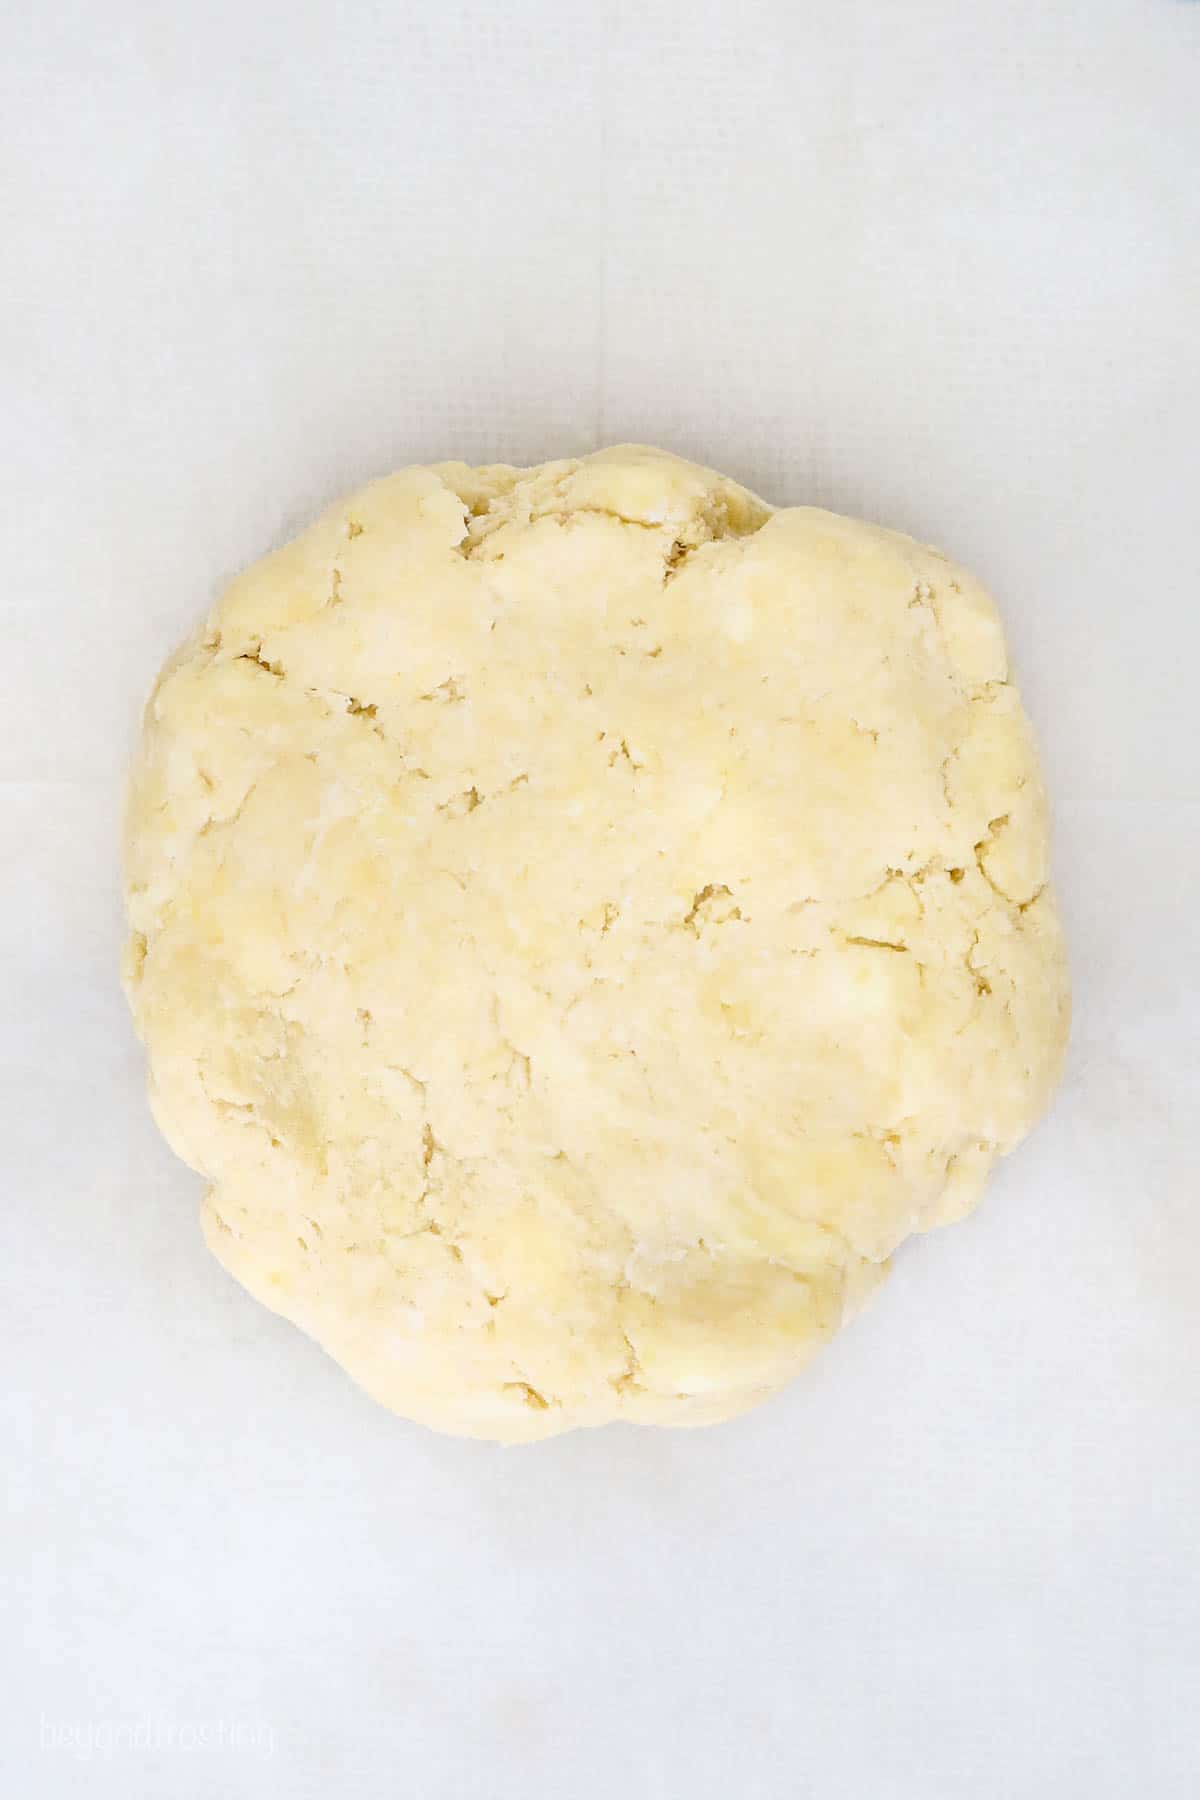 A disc of homemade butter pie dough on top of a smooth white surface